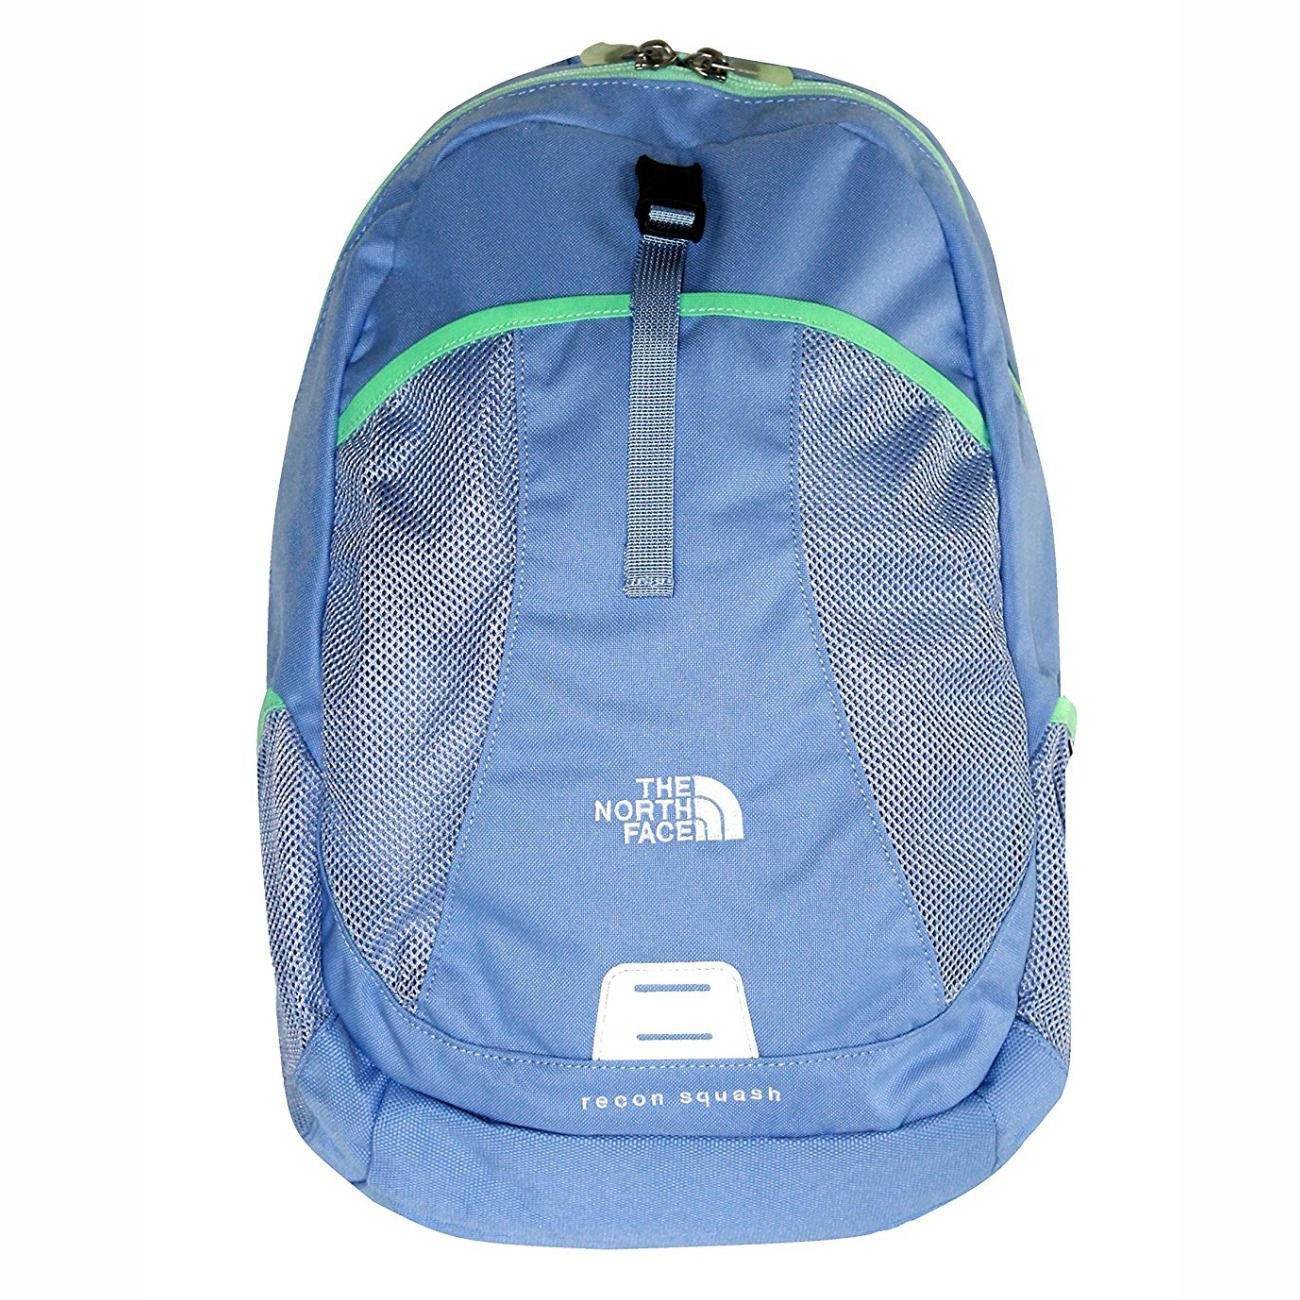 9d24b6eb3884 21 Best Backpacks for Kids in 2018 - Cool Kids Backpacks   Book Bags